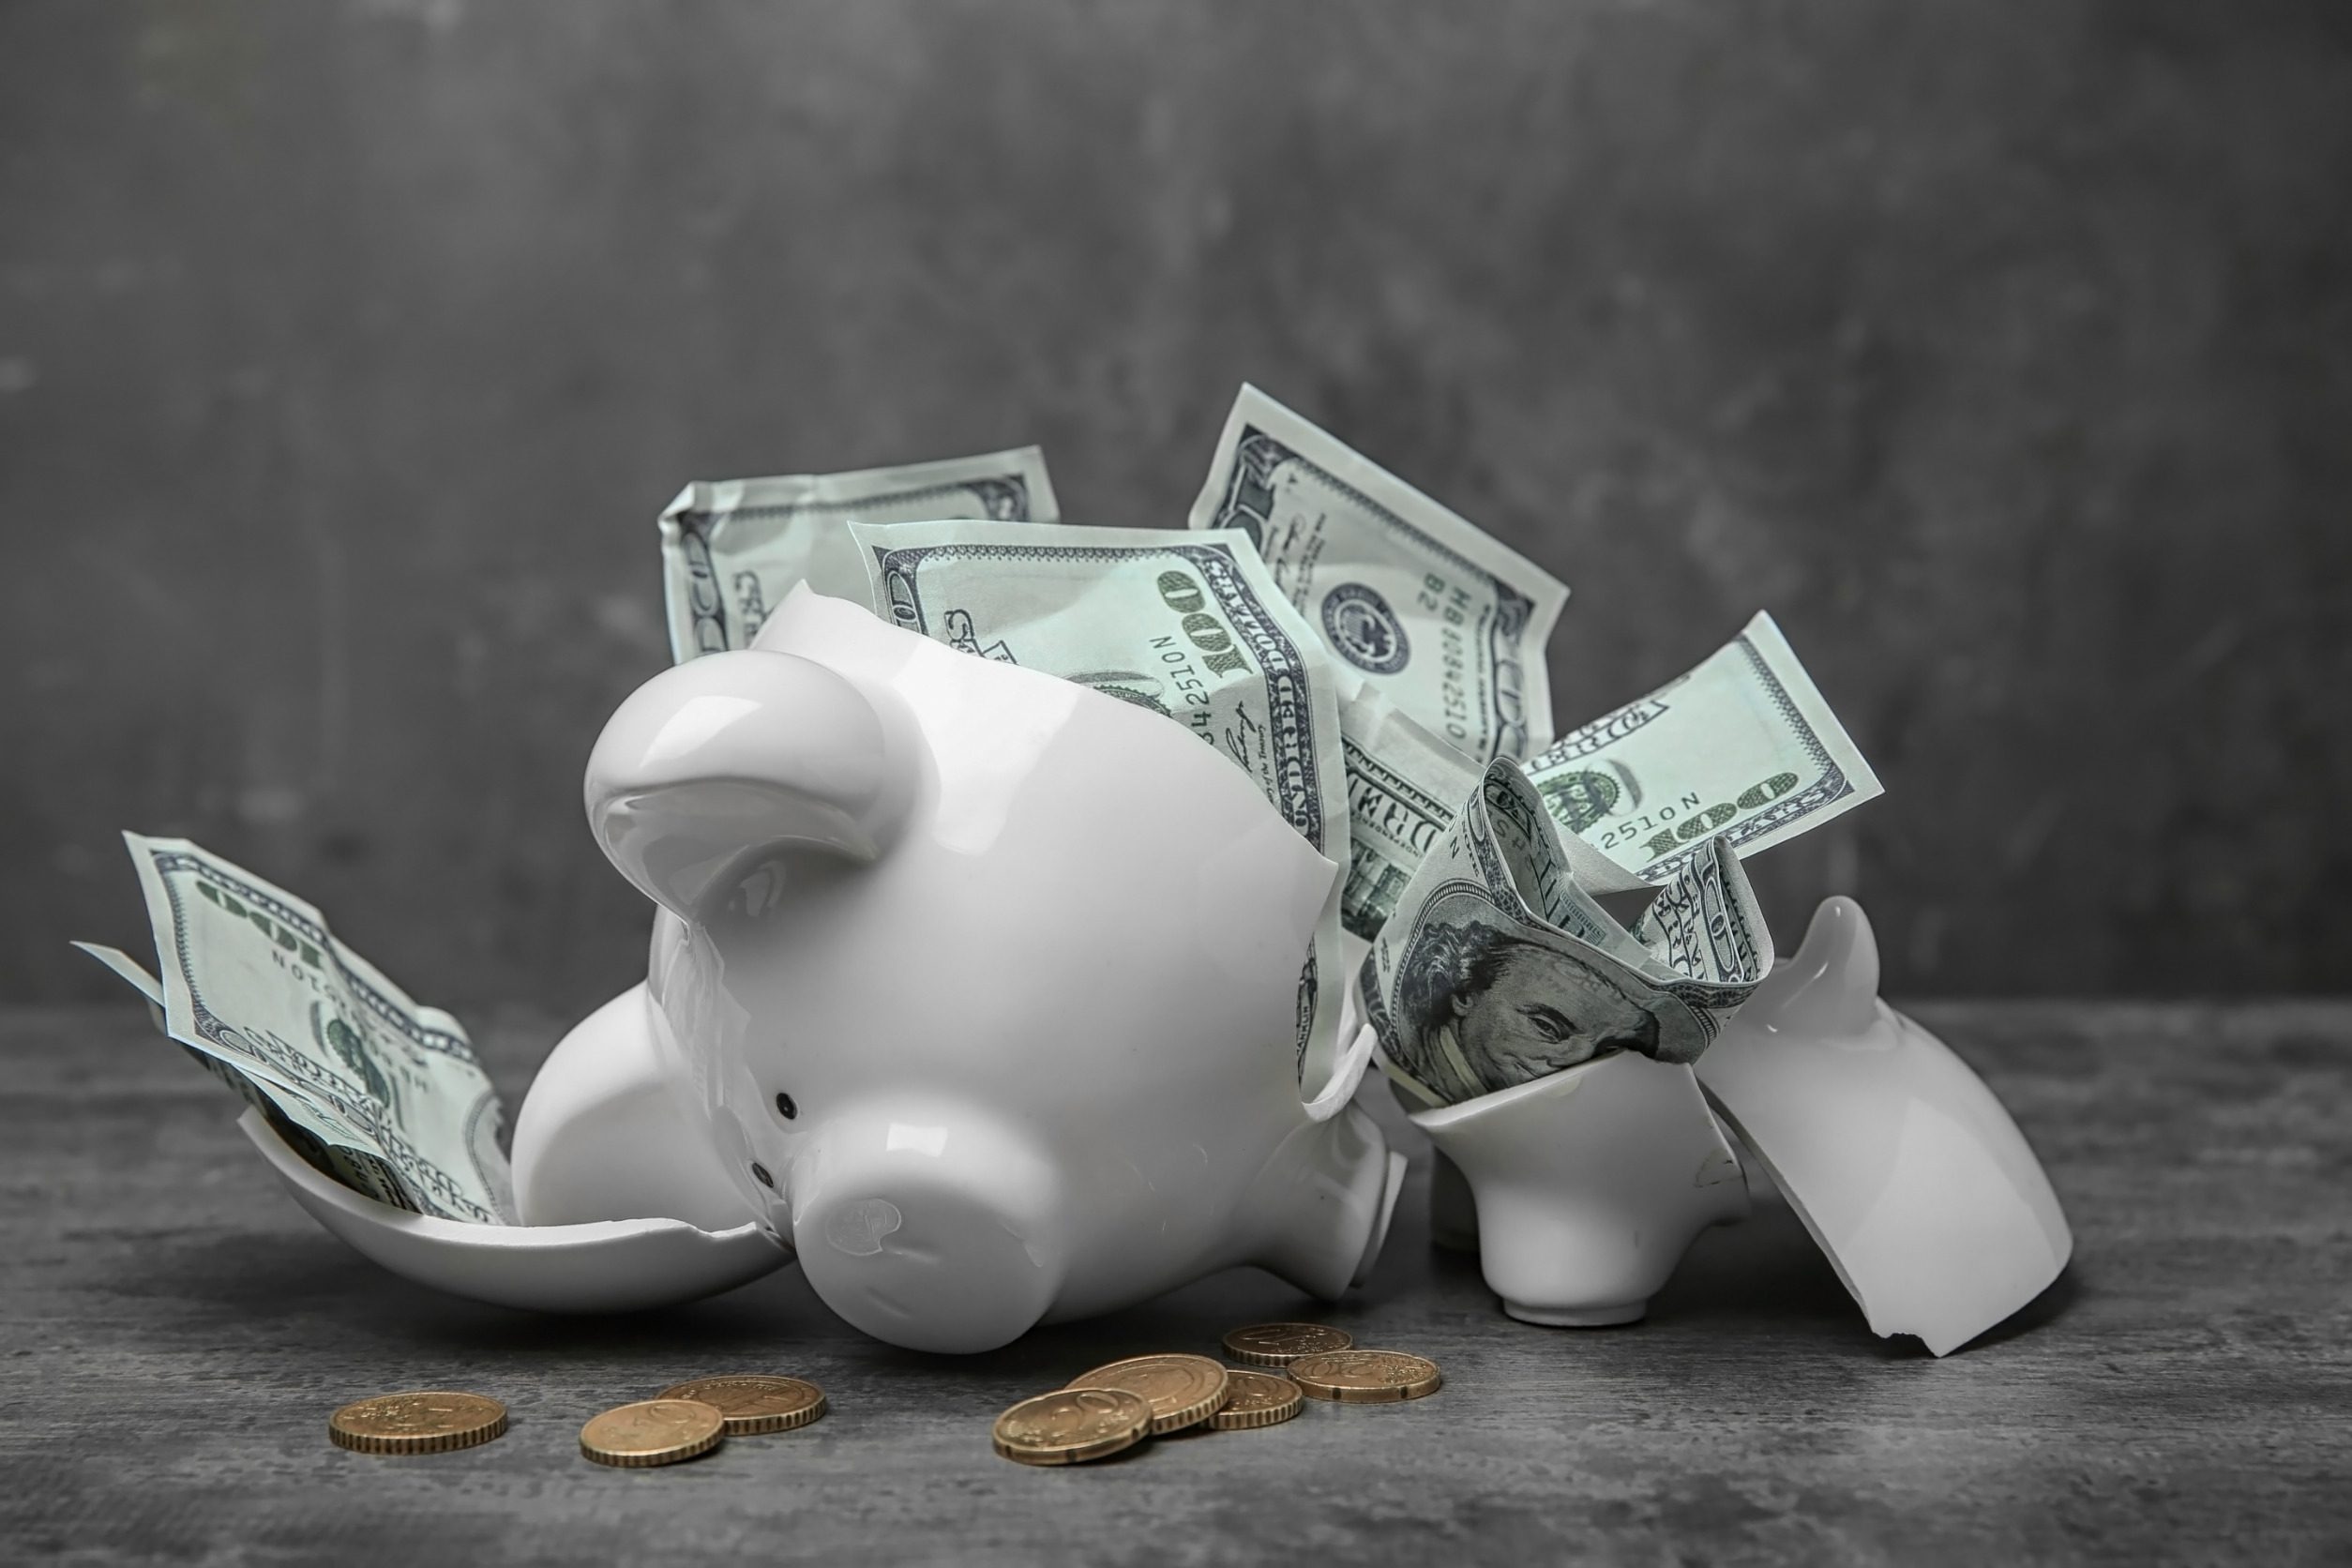 Piggy Bank busted open due to budget reasons